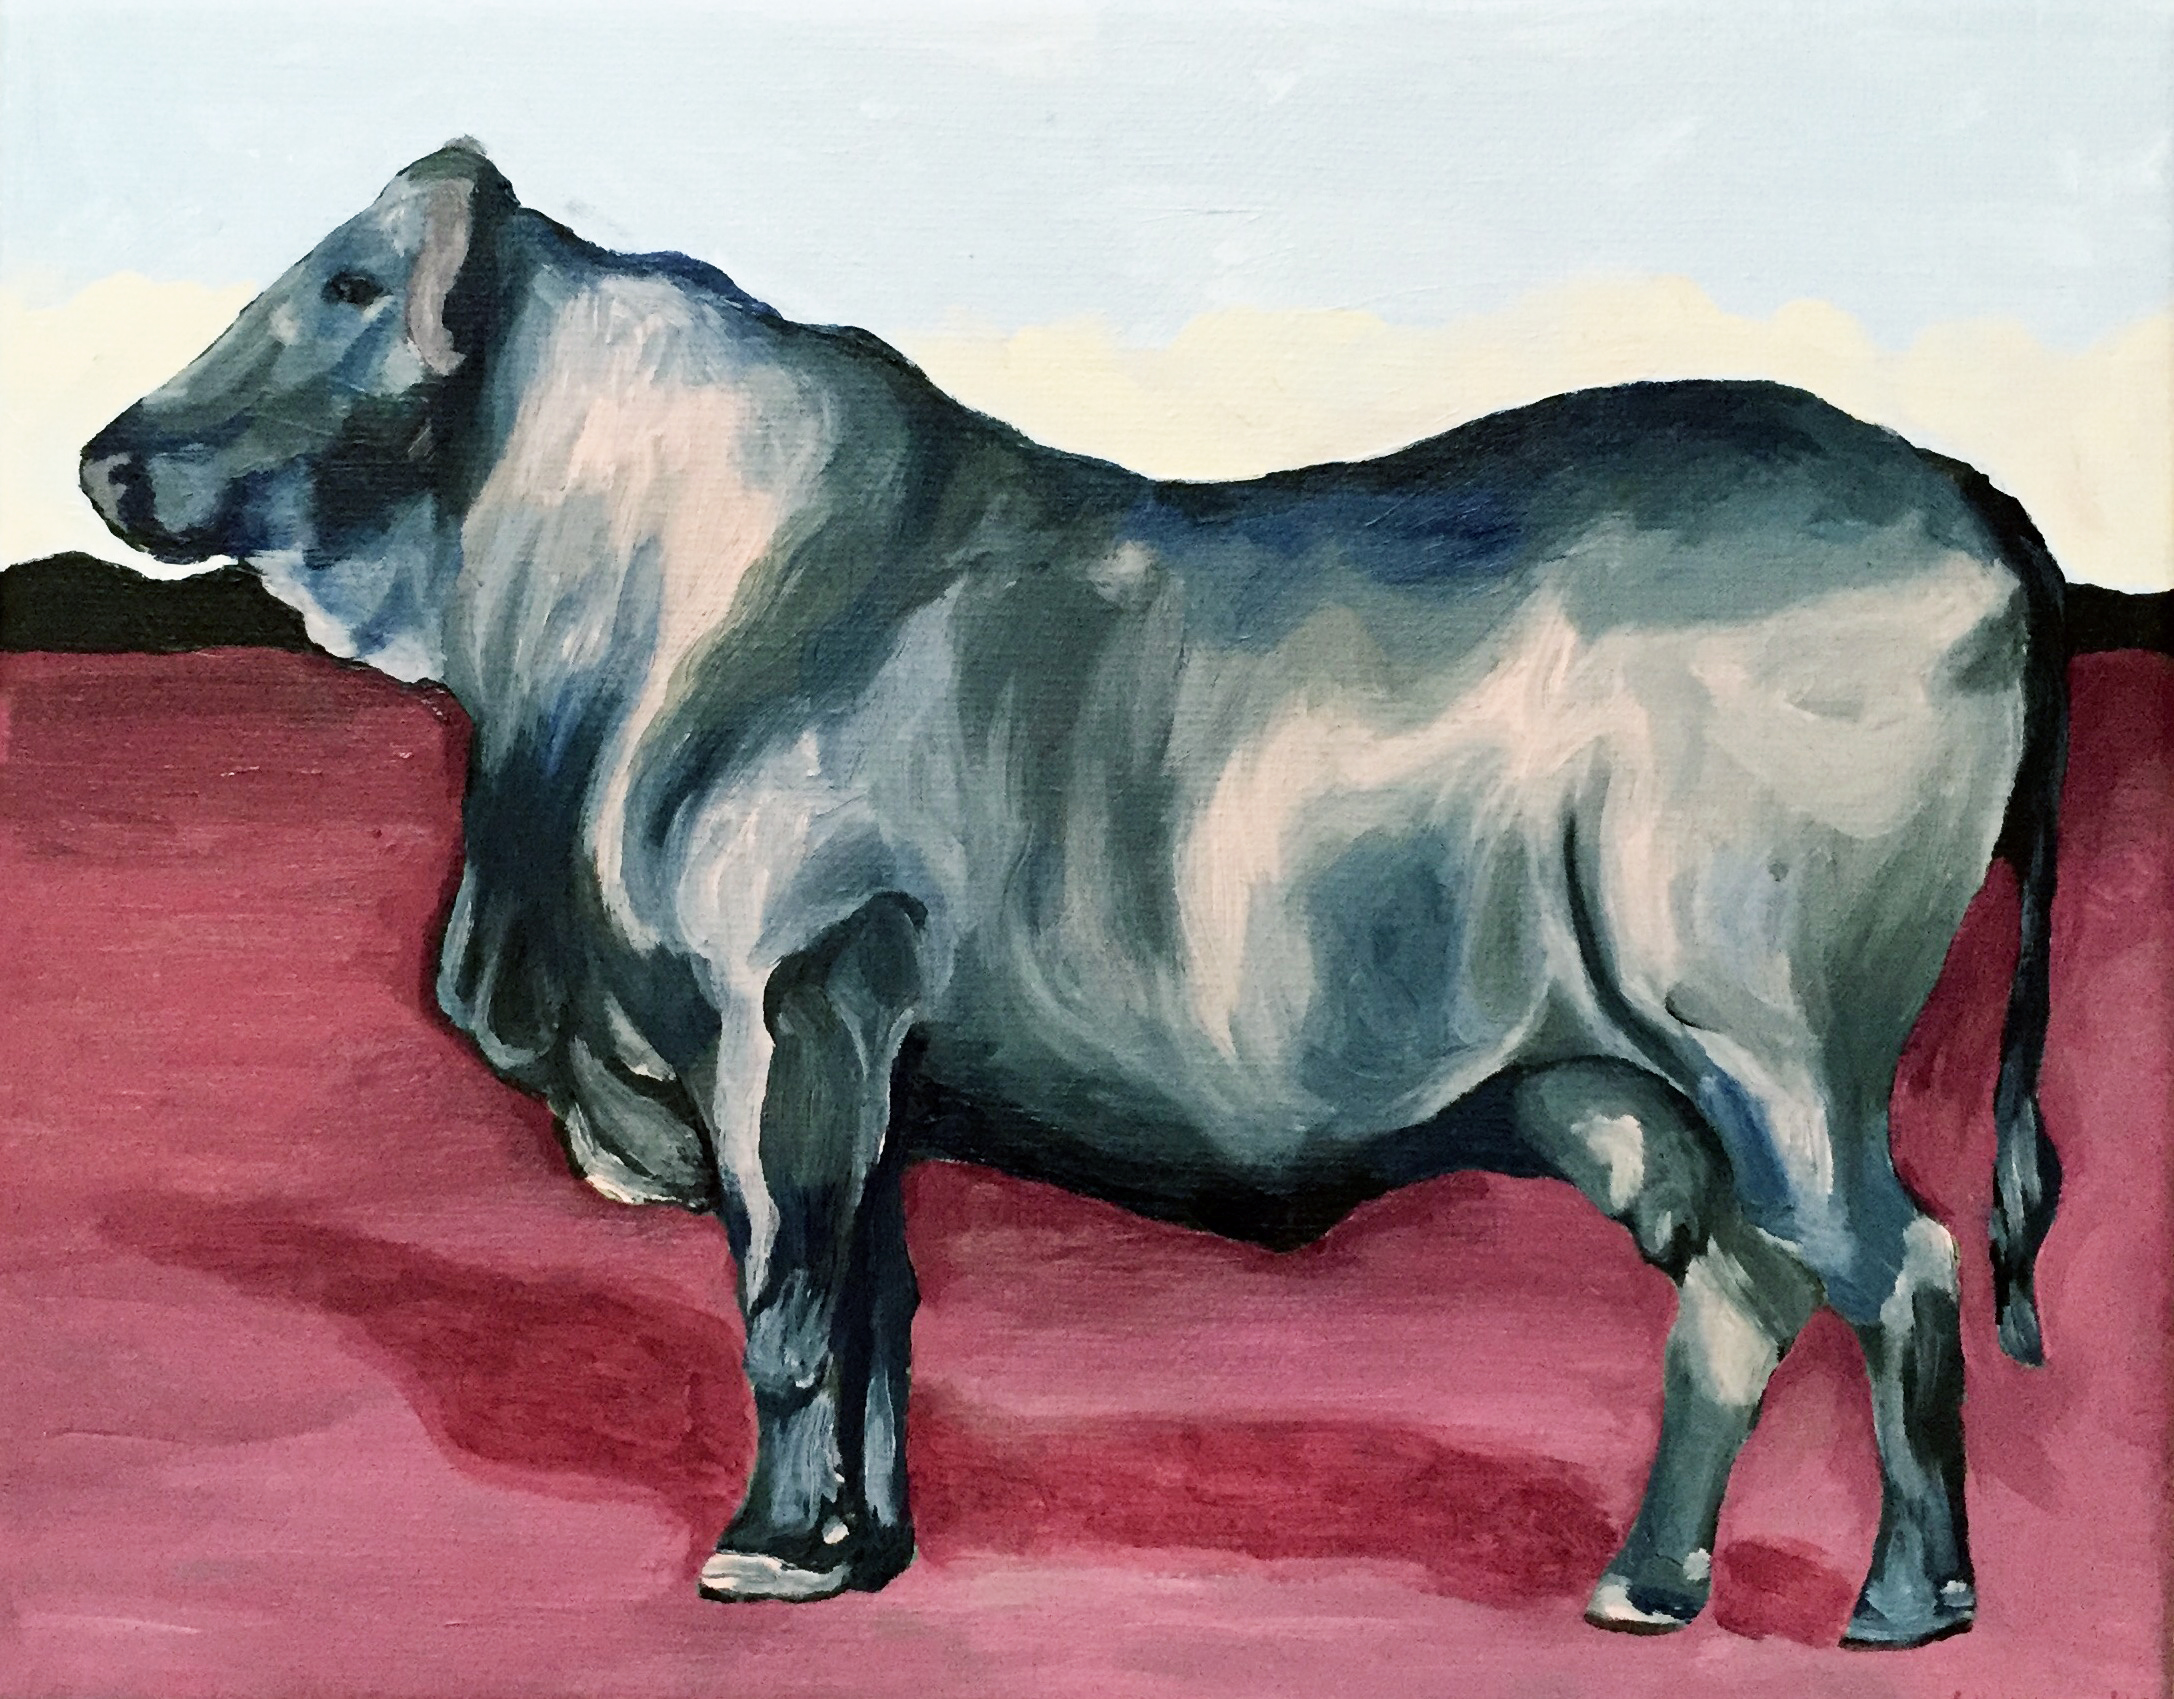 Bull. 2016, Acrylic on canvas